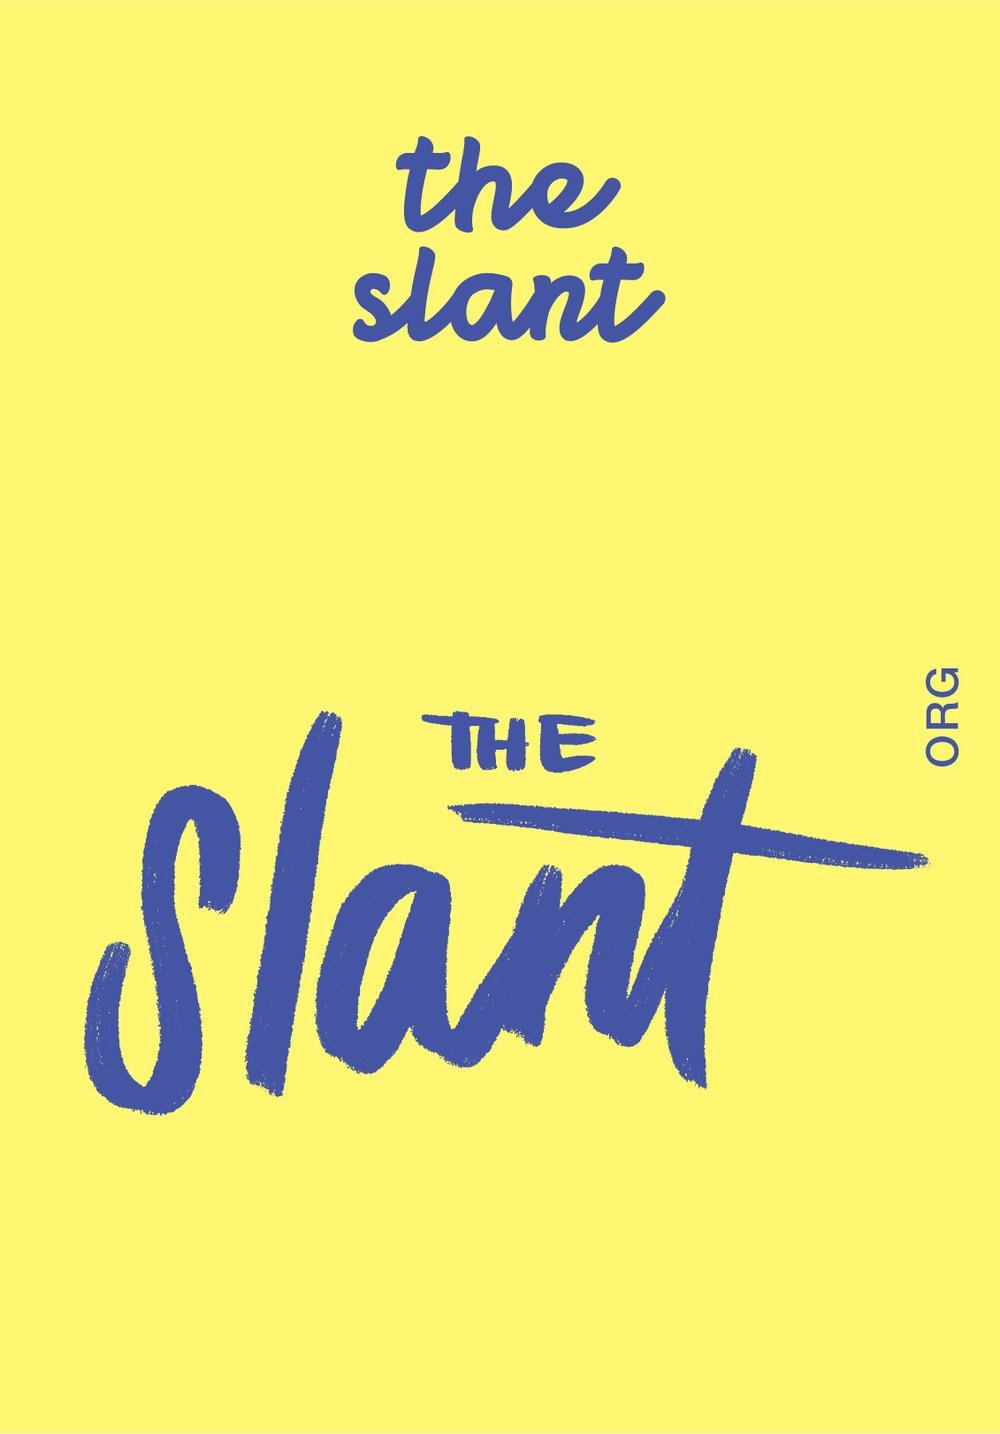 THE SLANT   WEBSITE   @SLANTEMAIL   IG: SLANTEMAIL